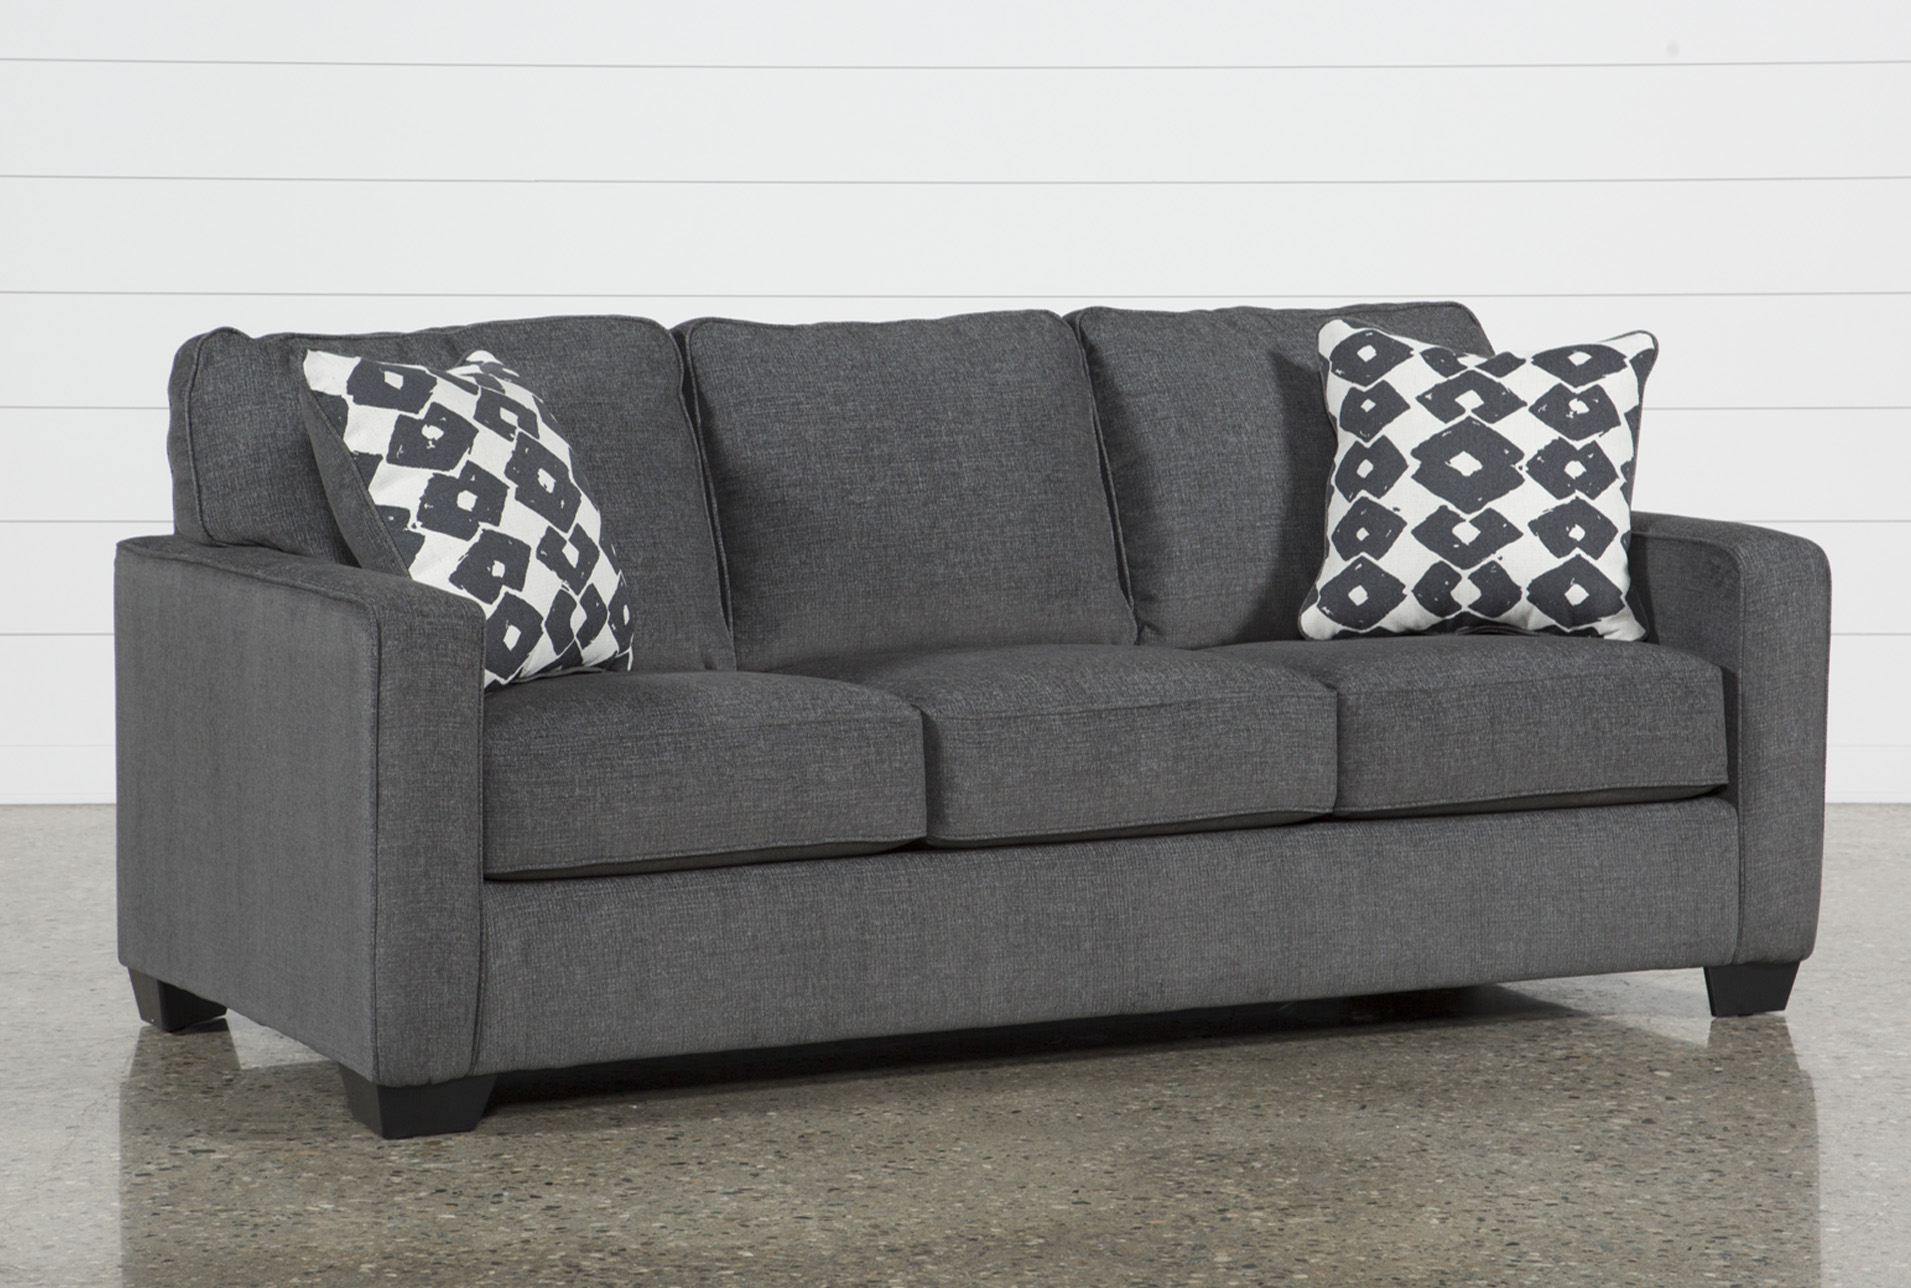 Queen Sofa Beds Sleeper Sofas Free Assembly With